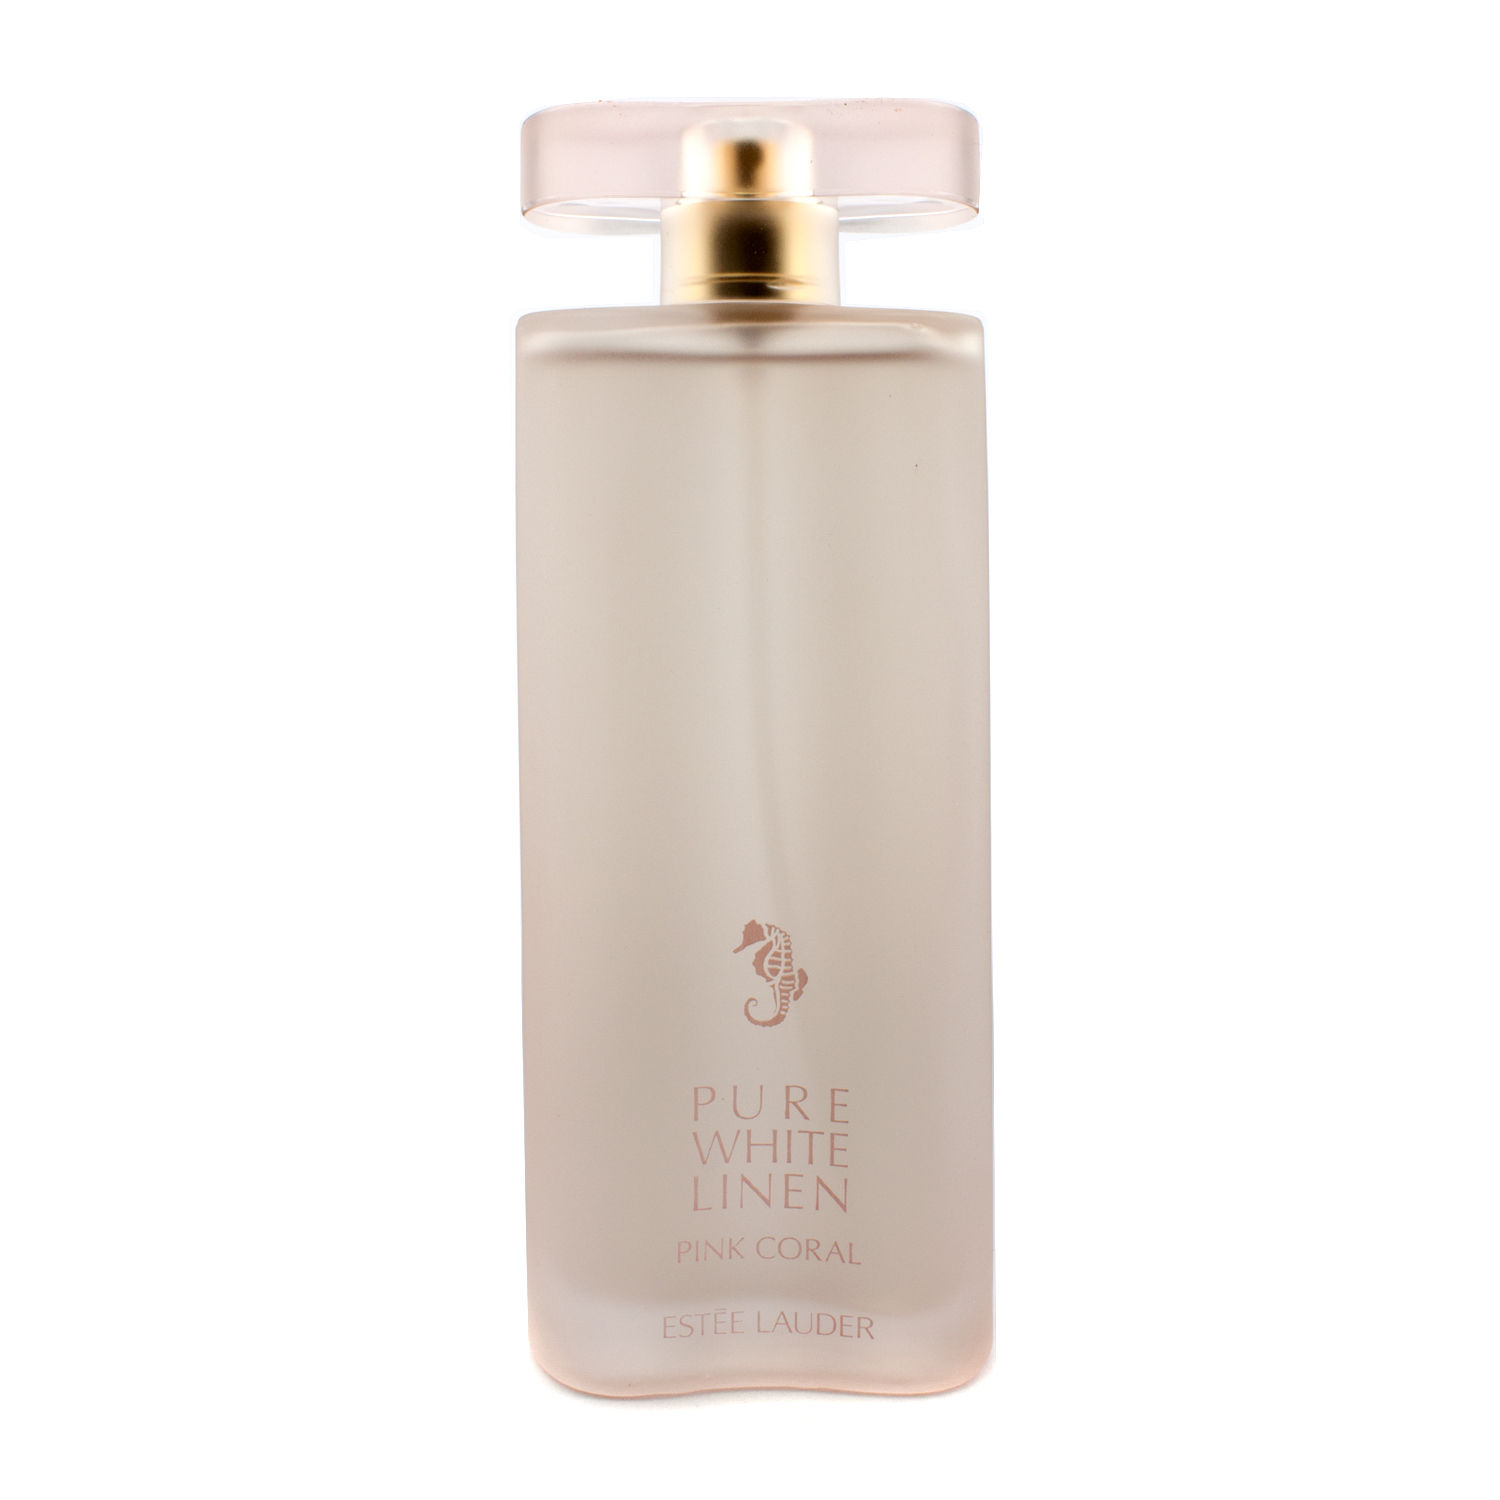 Pure White Linen Pink Coral EdP 30 ml